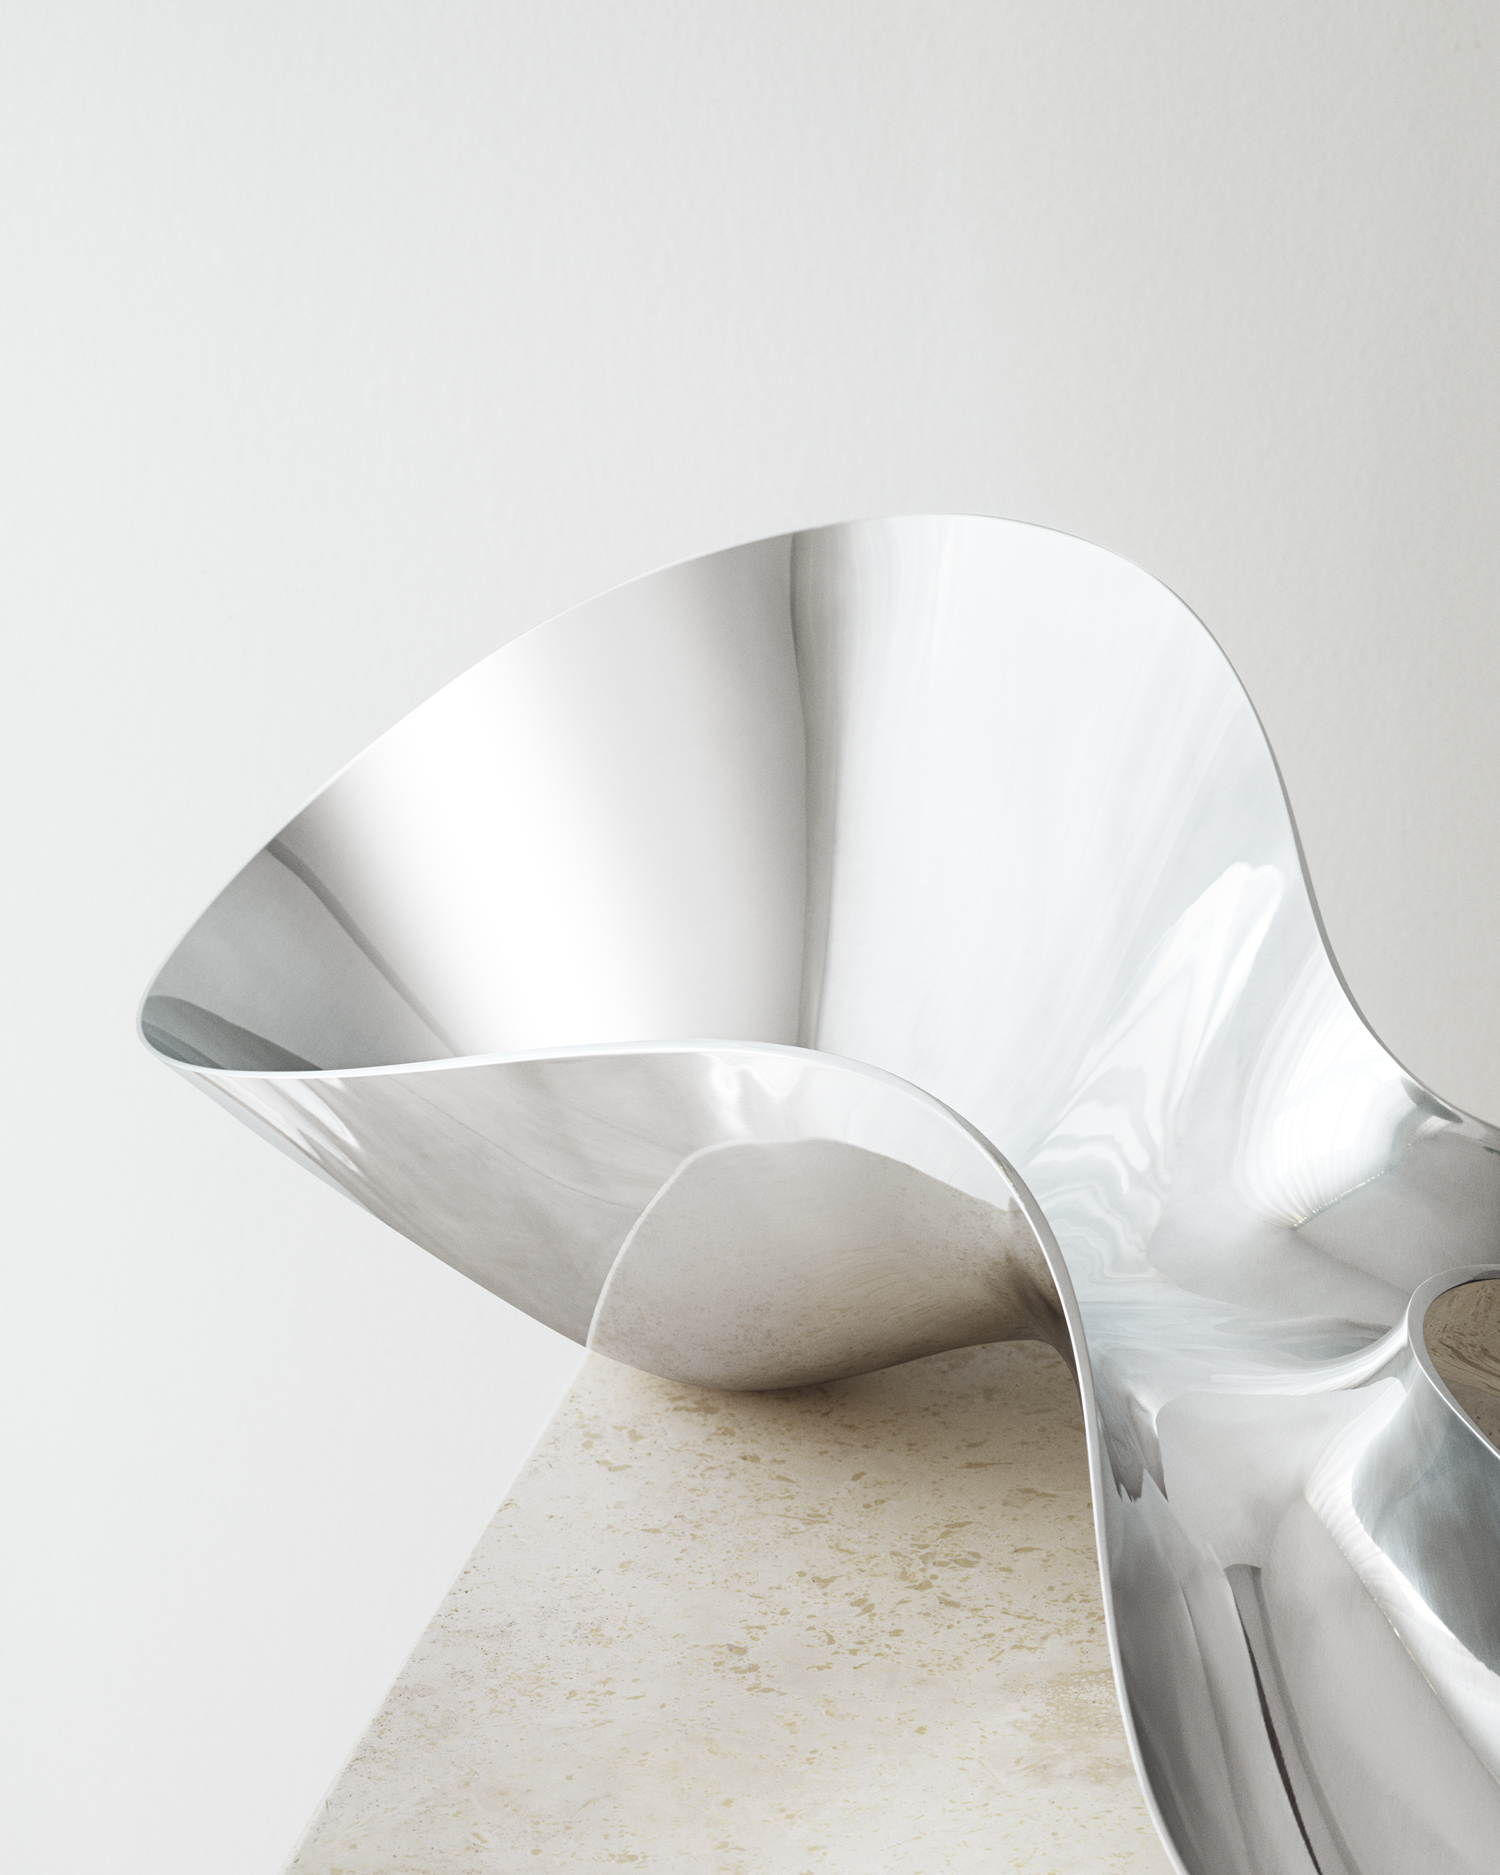 GEORG JENSEN HOME